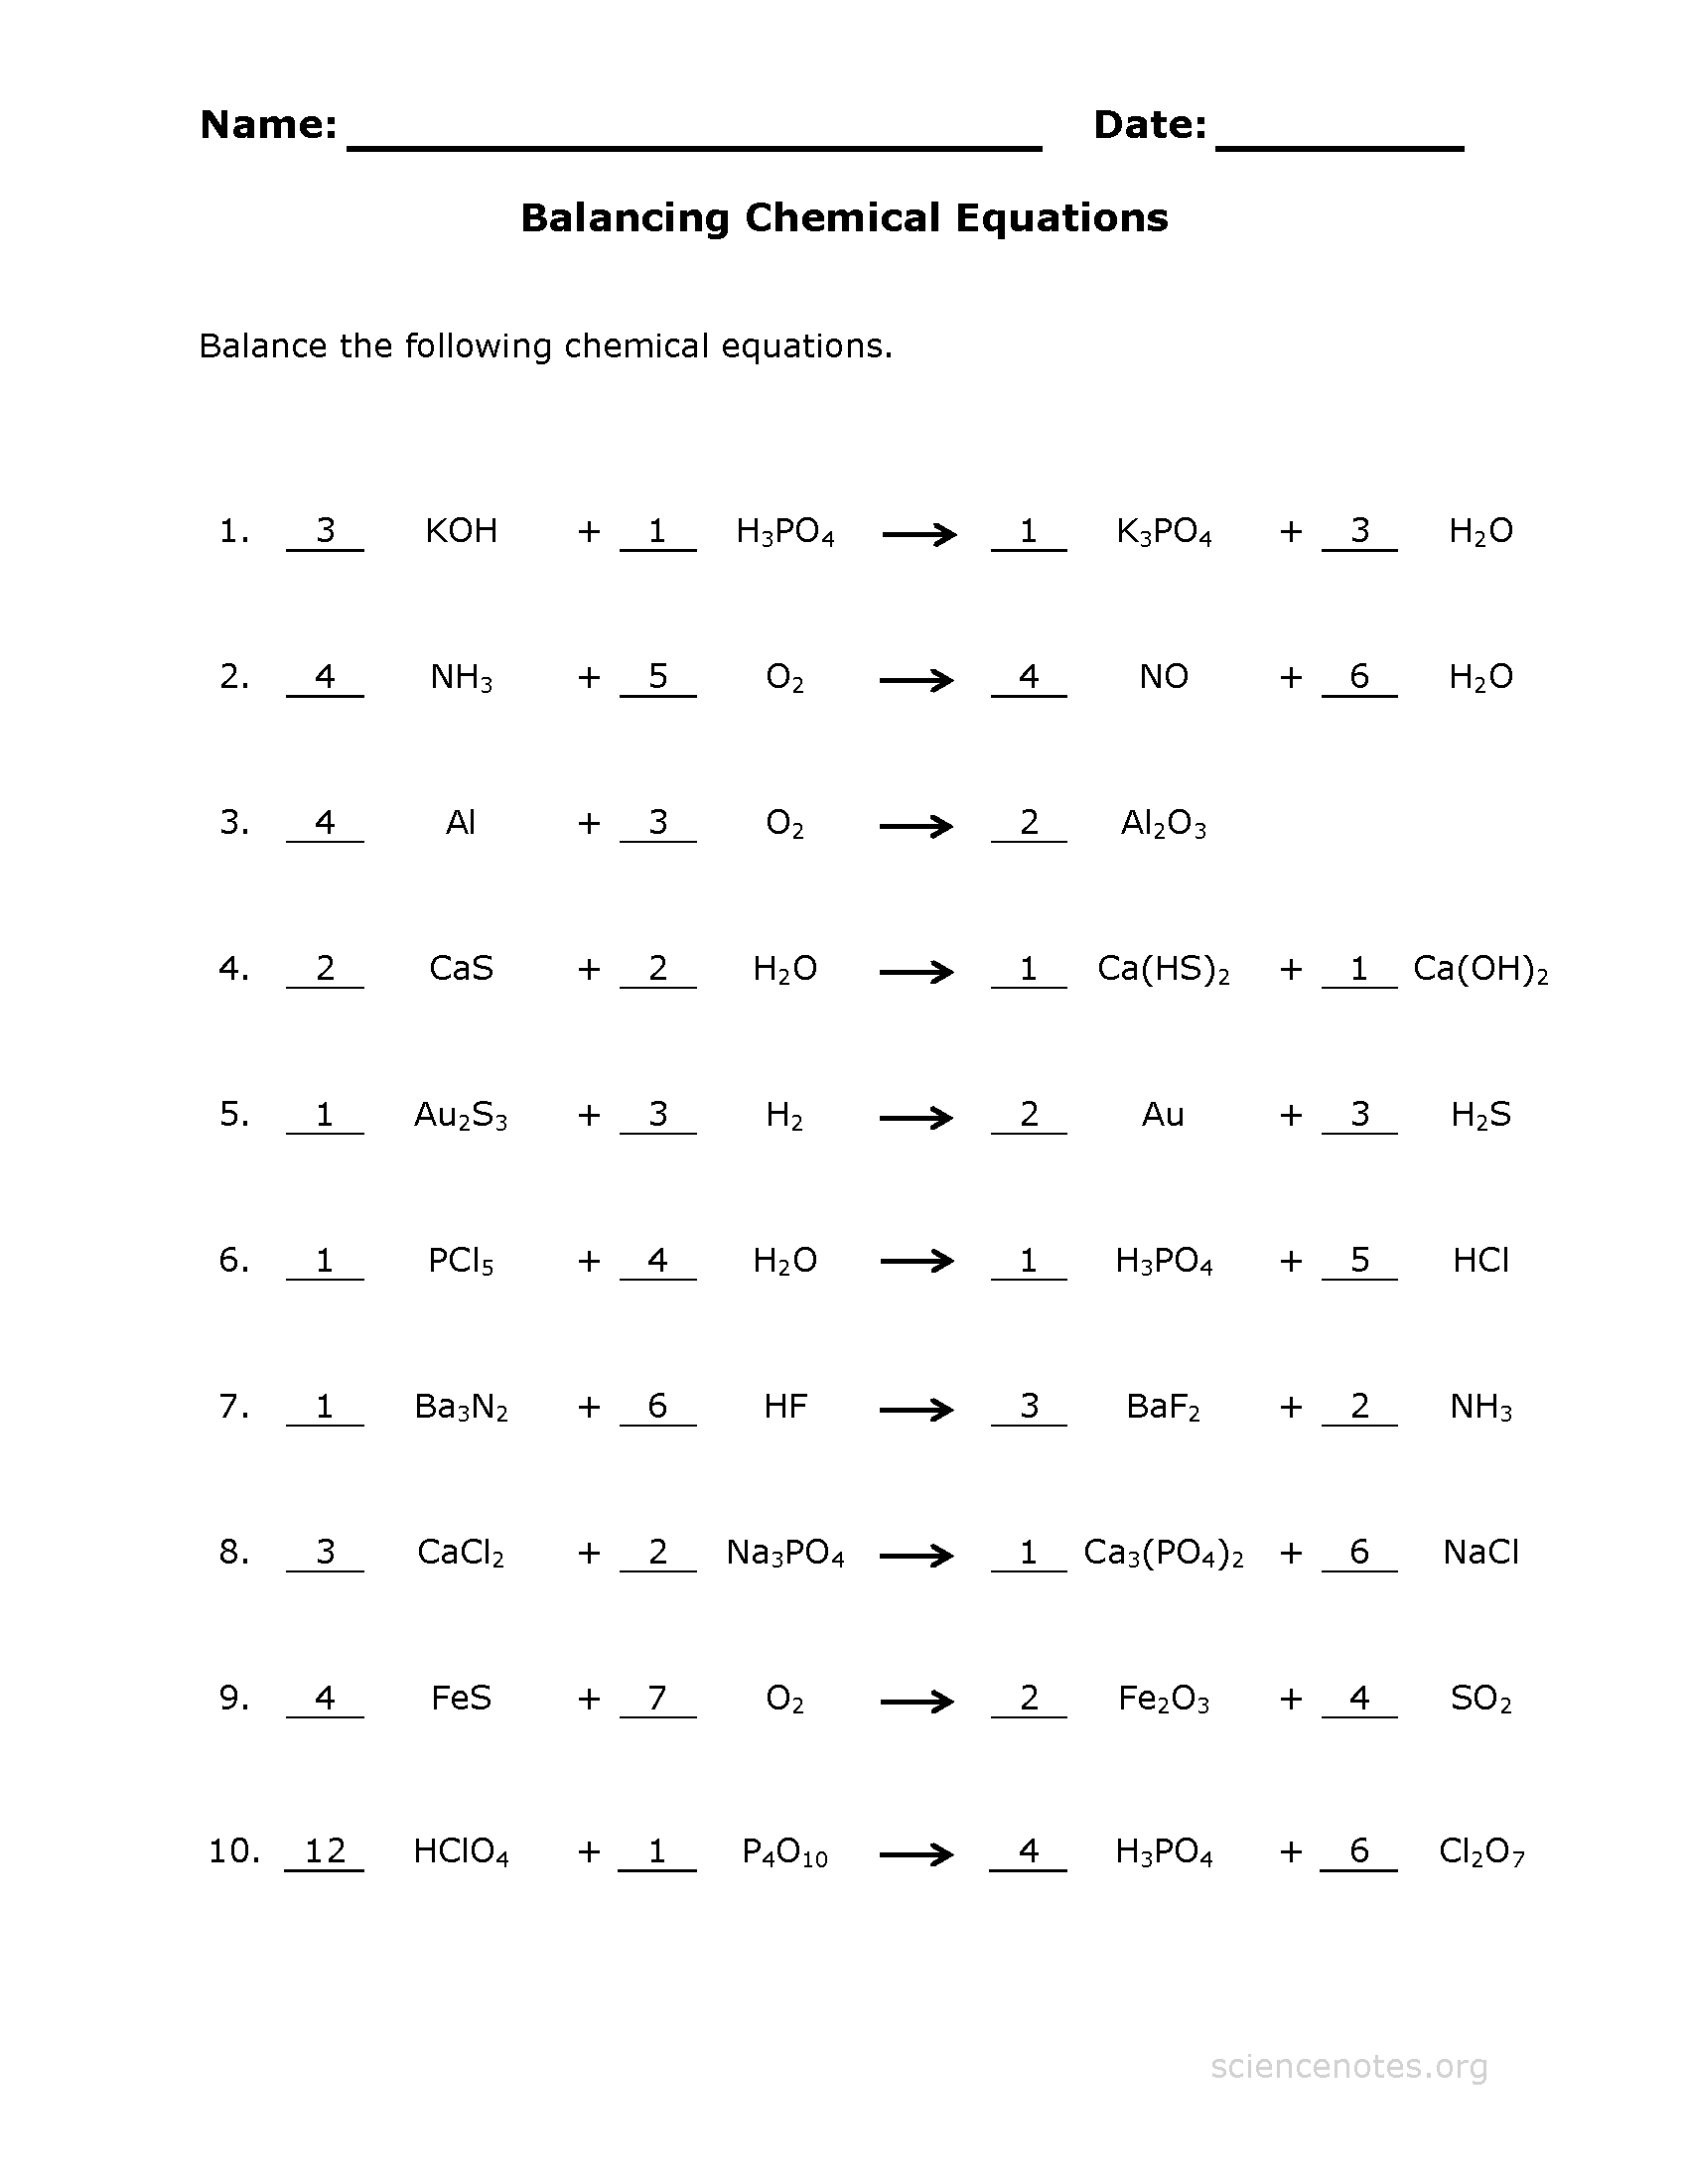 Balancing Chemical Equations Worksheet 1